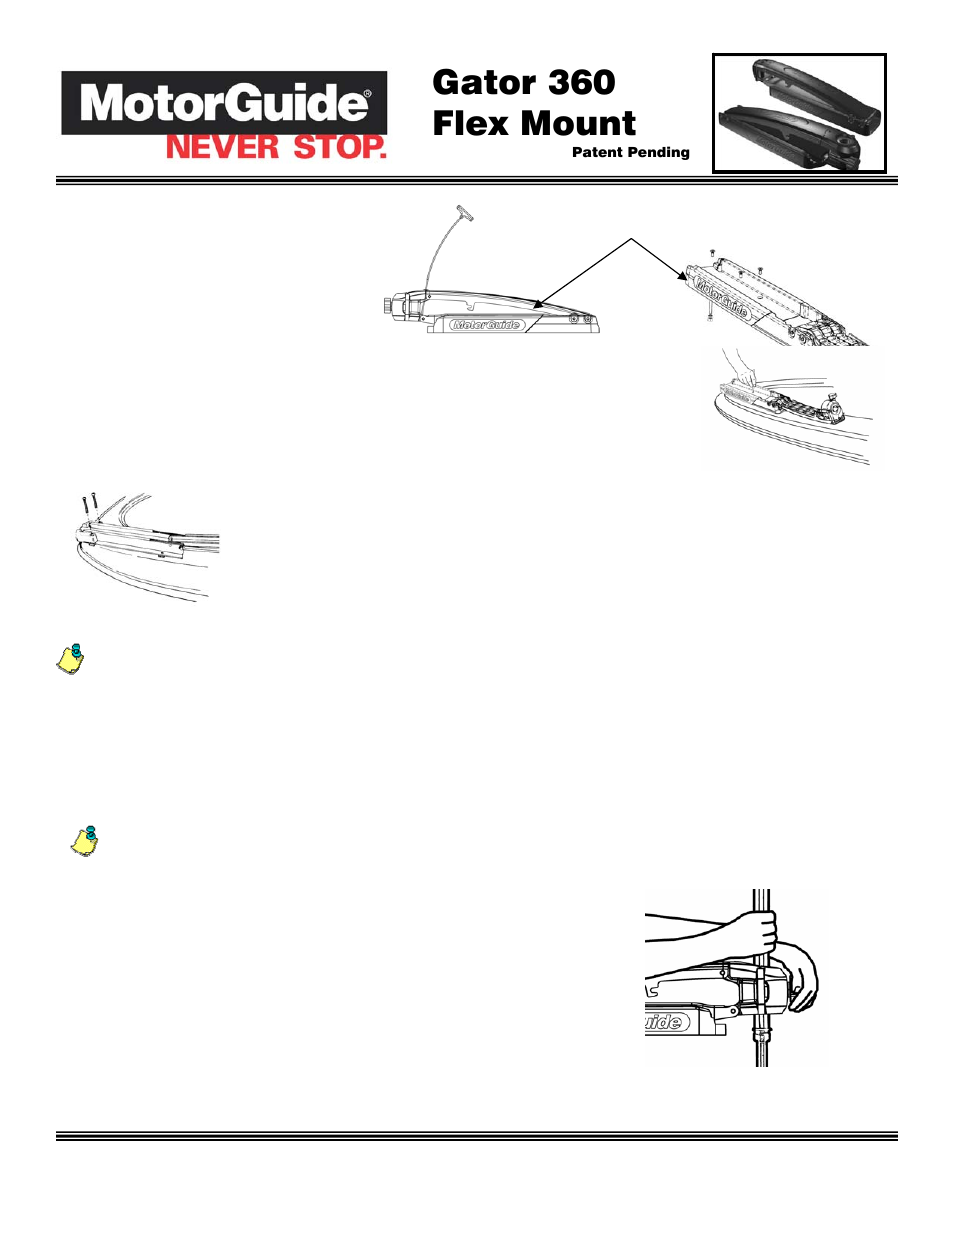 Motorguide Gator Mount 360 Schematic Parts Diagram Wire Mg 28 Wiring Flex User Manual 2 Pages Old